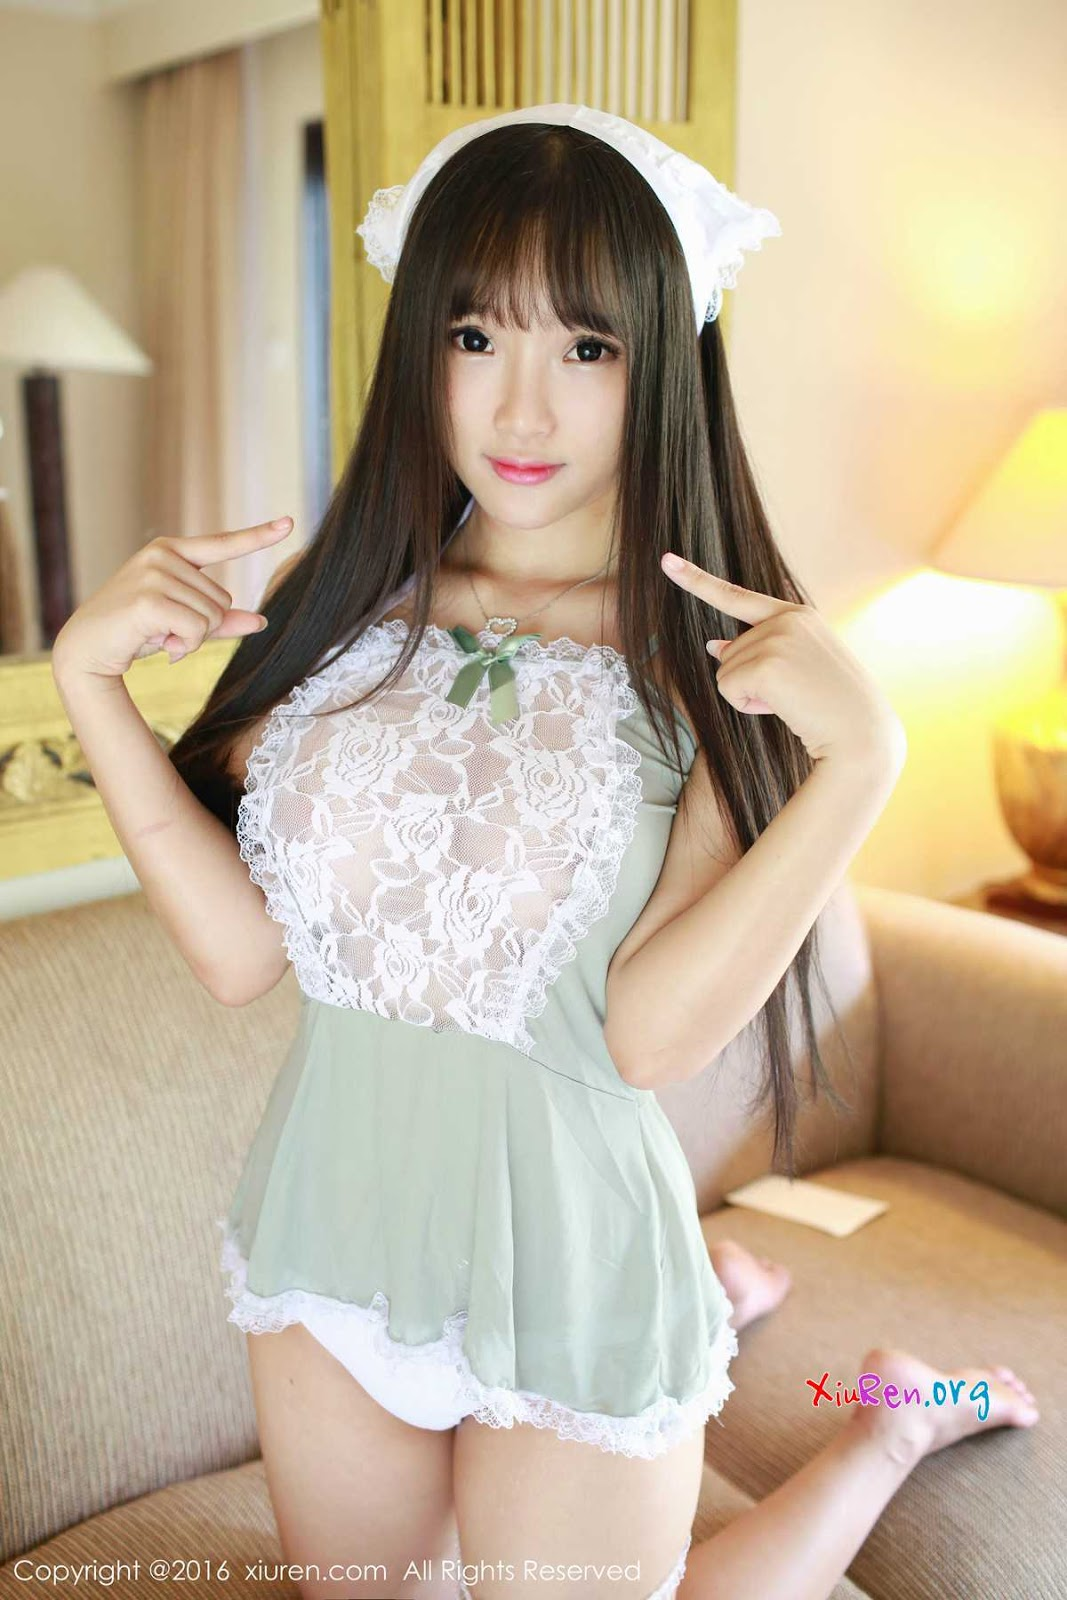 Archived: Meng YaoXia Chinese Girls Babyface Cute in Maid Cosplay Photoshoot for XiuRen